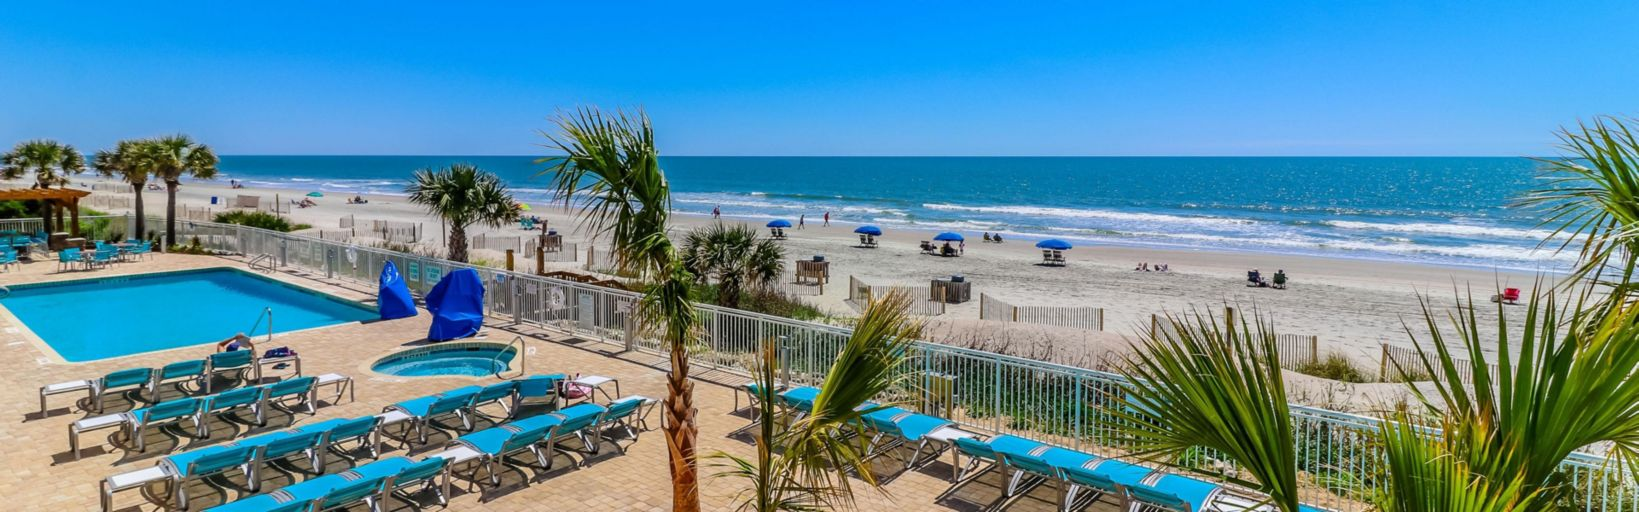 Surfside Welcome To Your Oceanfront Paradise